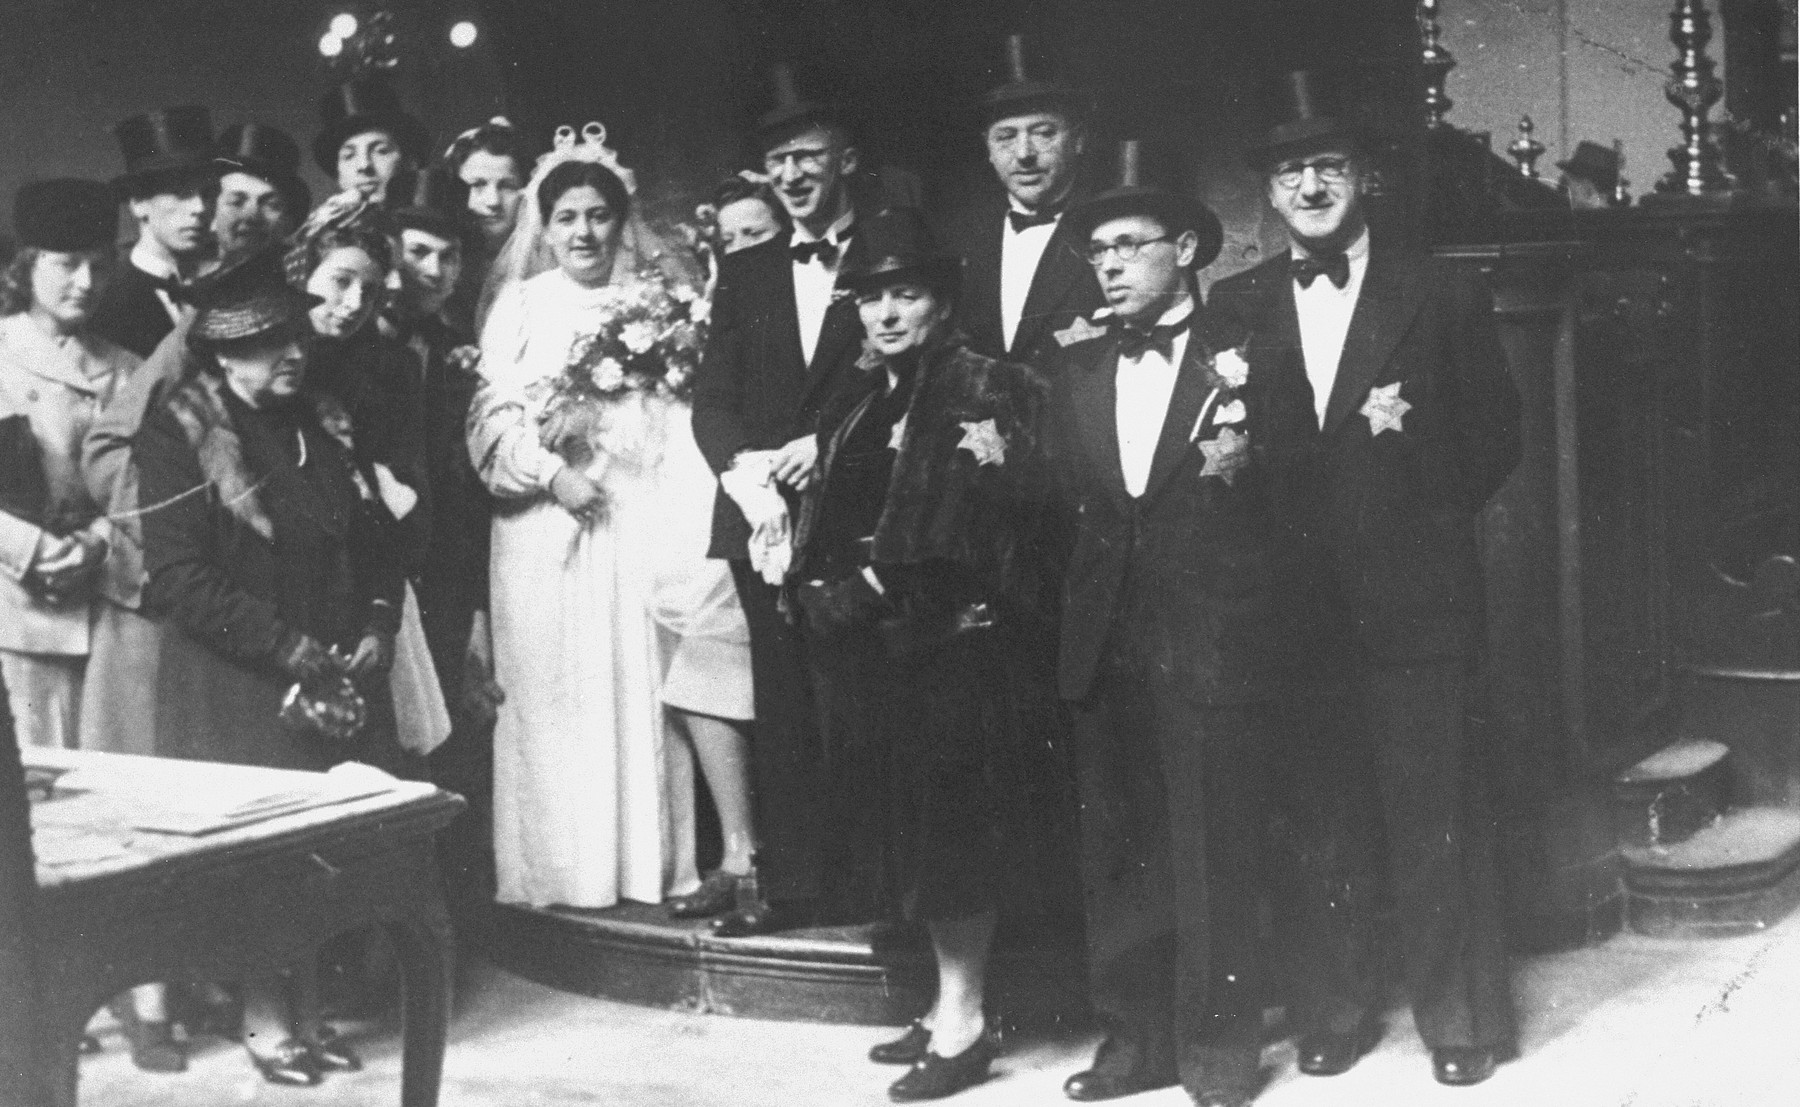 The newly married couple, Herman de Leeuw and Annie Pais, pose with members of the wedding party shortly after the ceremony.    Pictured from left to right are Fifi Sjouwerman, Sieg Pekel, Mrs. Pais (the bride's mother), Jaap de Leeuw (Fifi's fiancé), Rachel de Leeuw (the groom's sister), Samuel Schrijver, S. Barzilay (Rachel's fiancé), Ida de Leeuw, Anne de Leeuw-Pais, Ina de Leeuw, Herman de Leeuw, Heintje de Leeuw (the groom's mother), Jacques Pais (the bride's father), Abraham Pais (the bride's brother), and Sam de Leeuw (the groom's father).